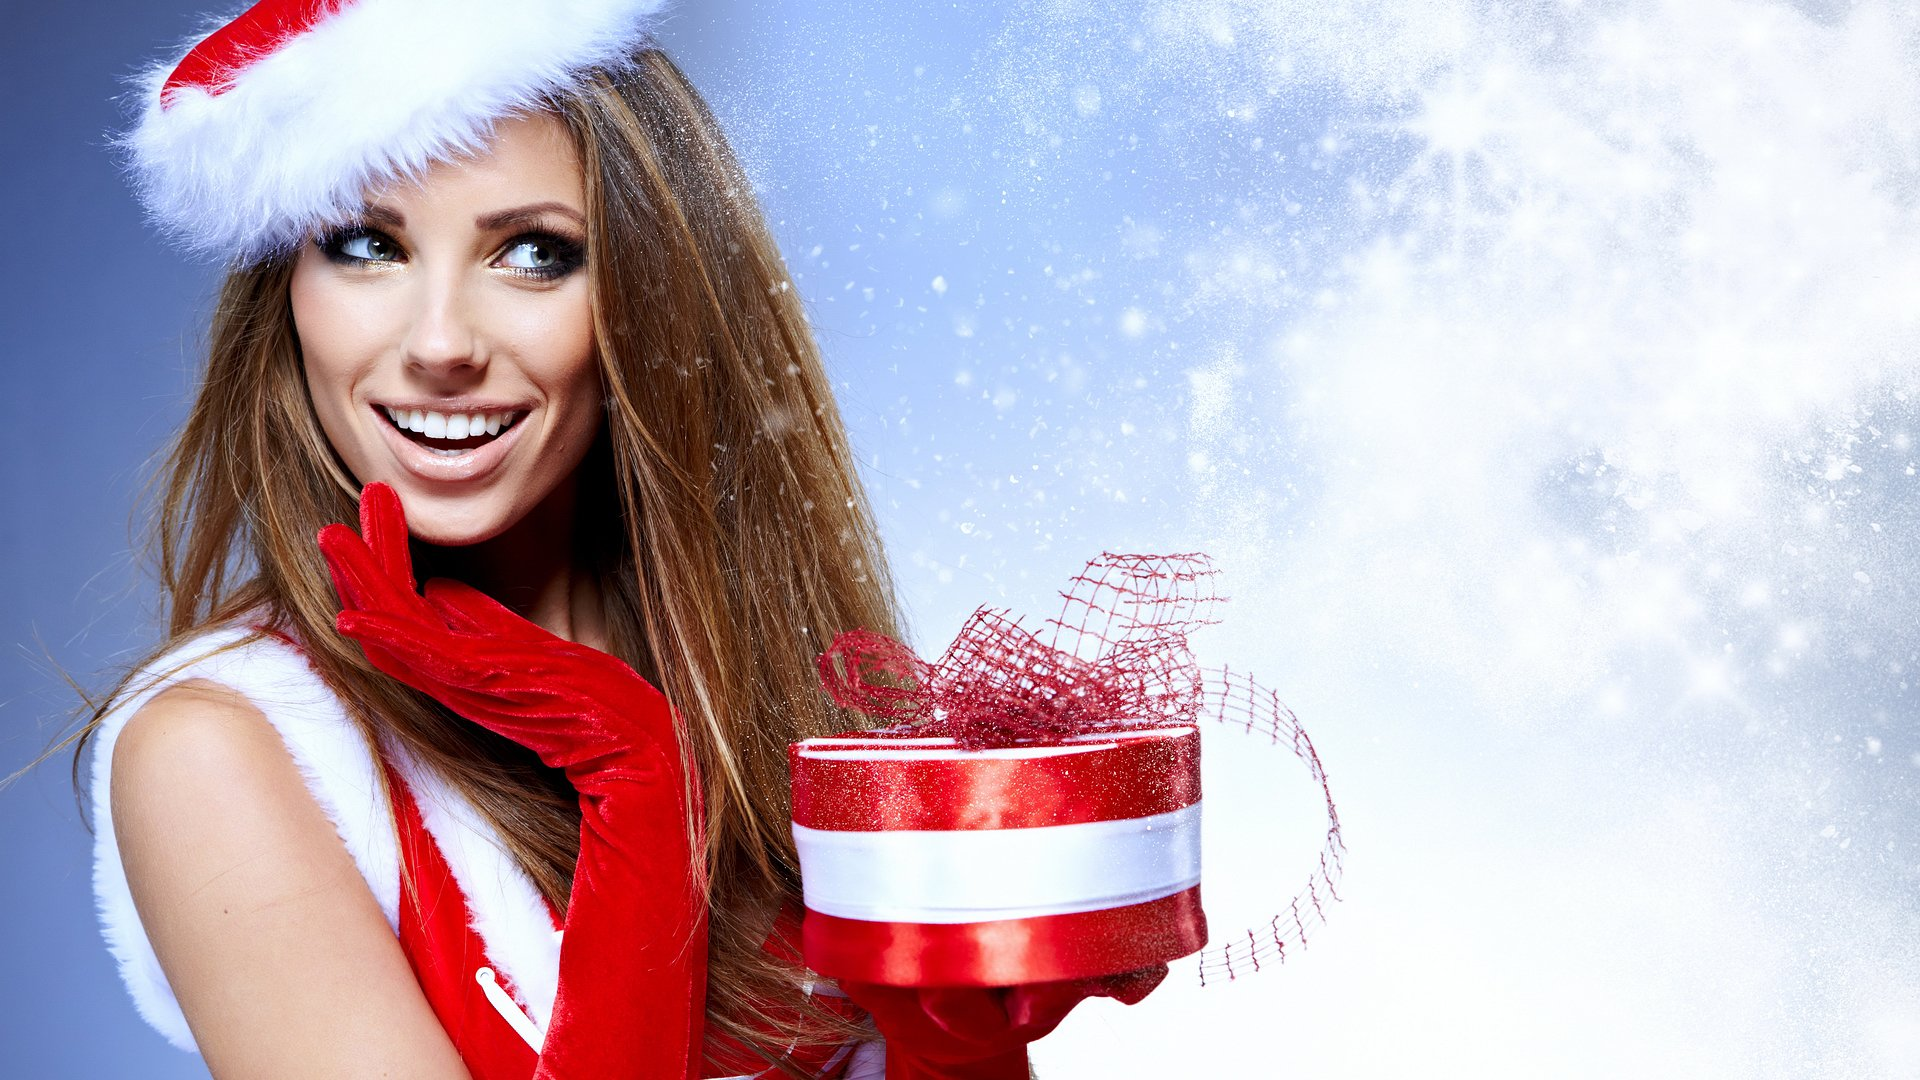 Beautiful Girl with Christmas Gift HD Wallpaper 1920x1080